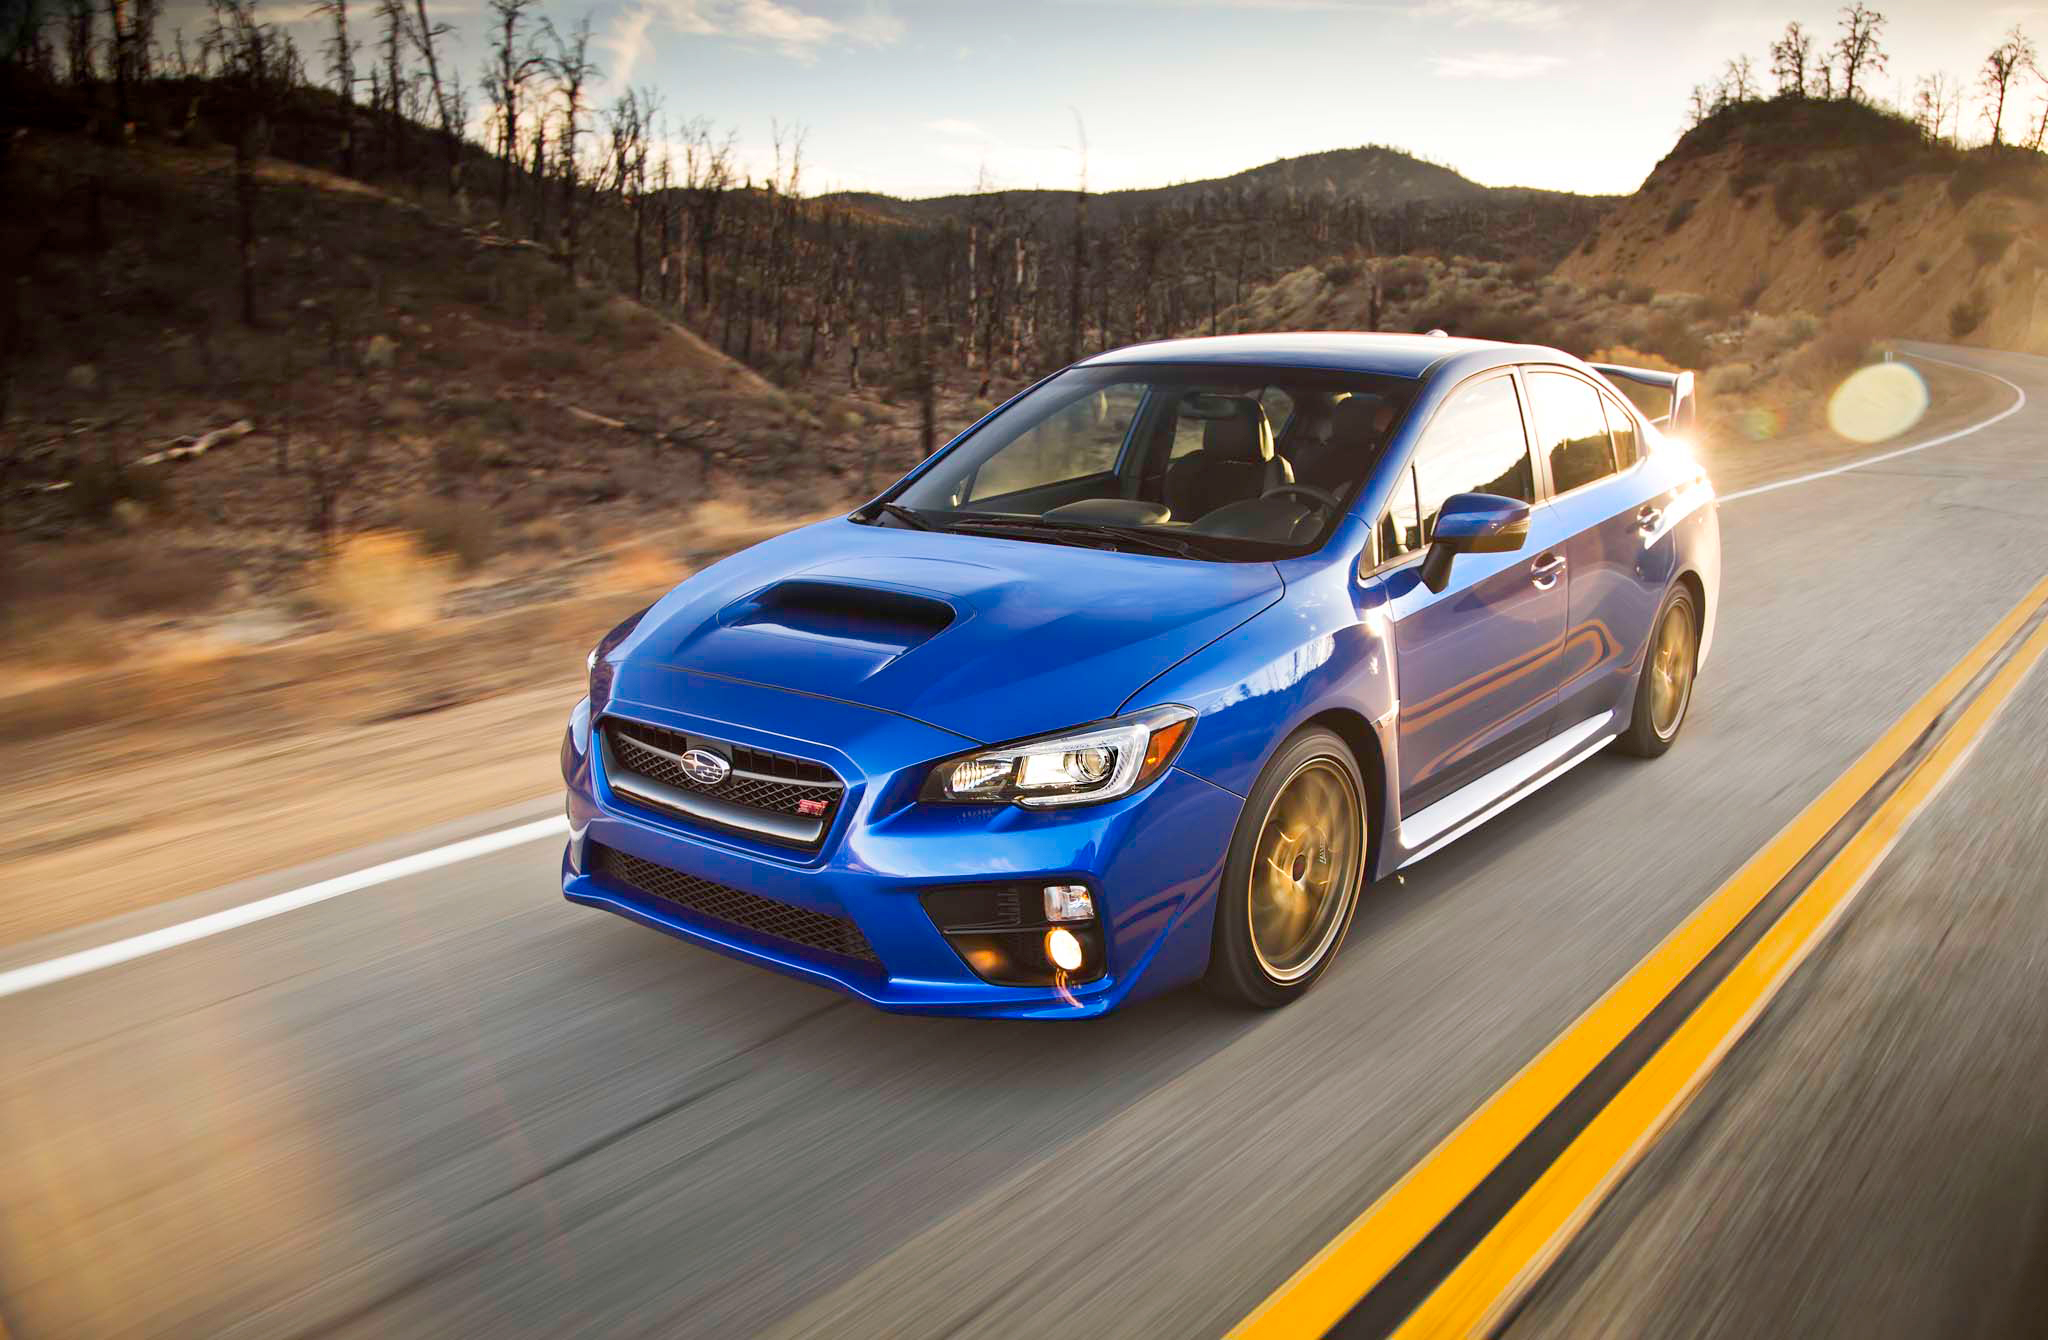 2015 Subaru WRX-STI Performance